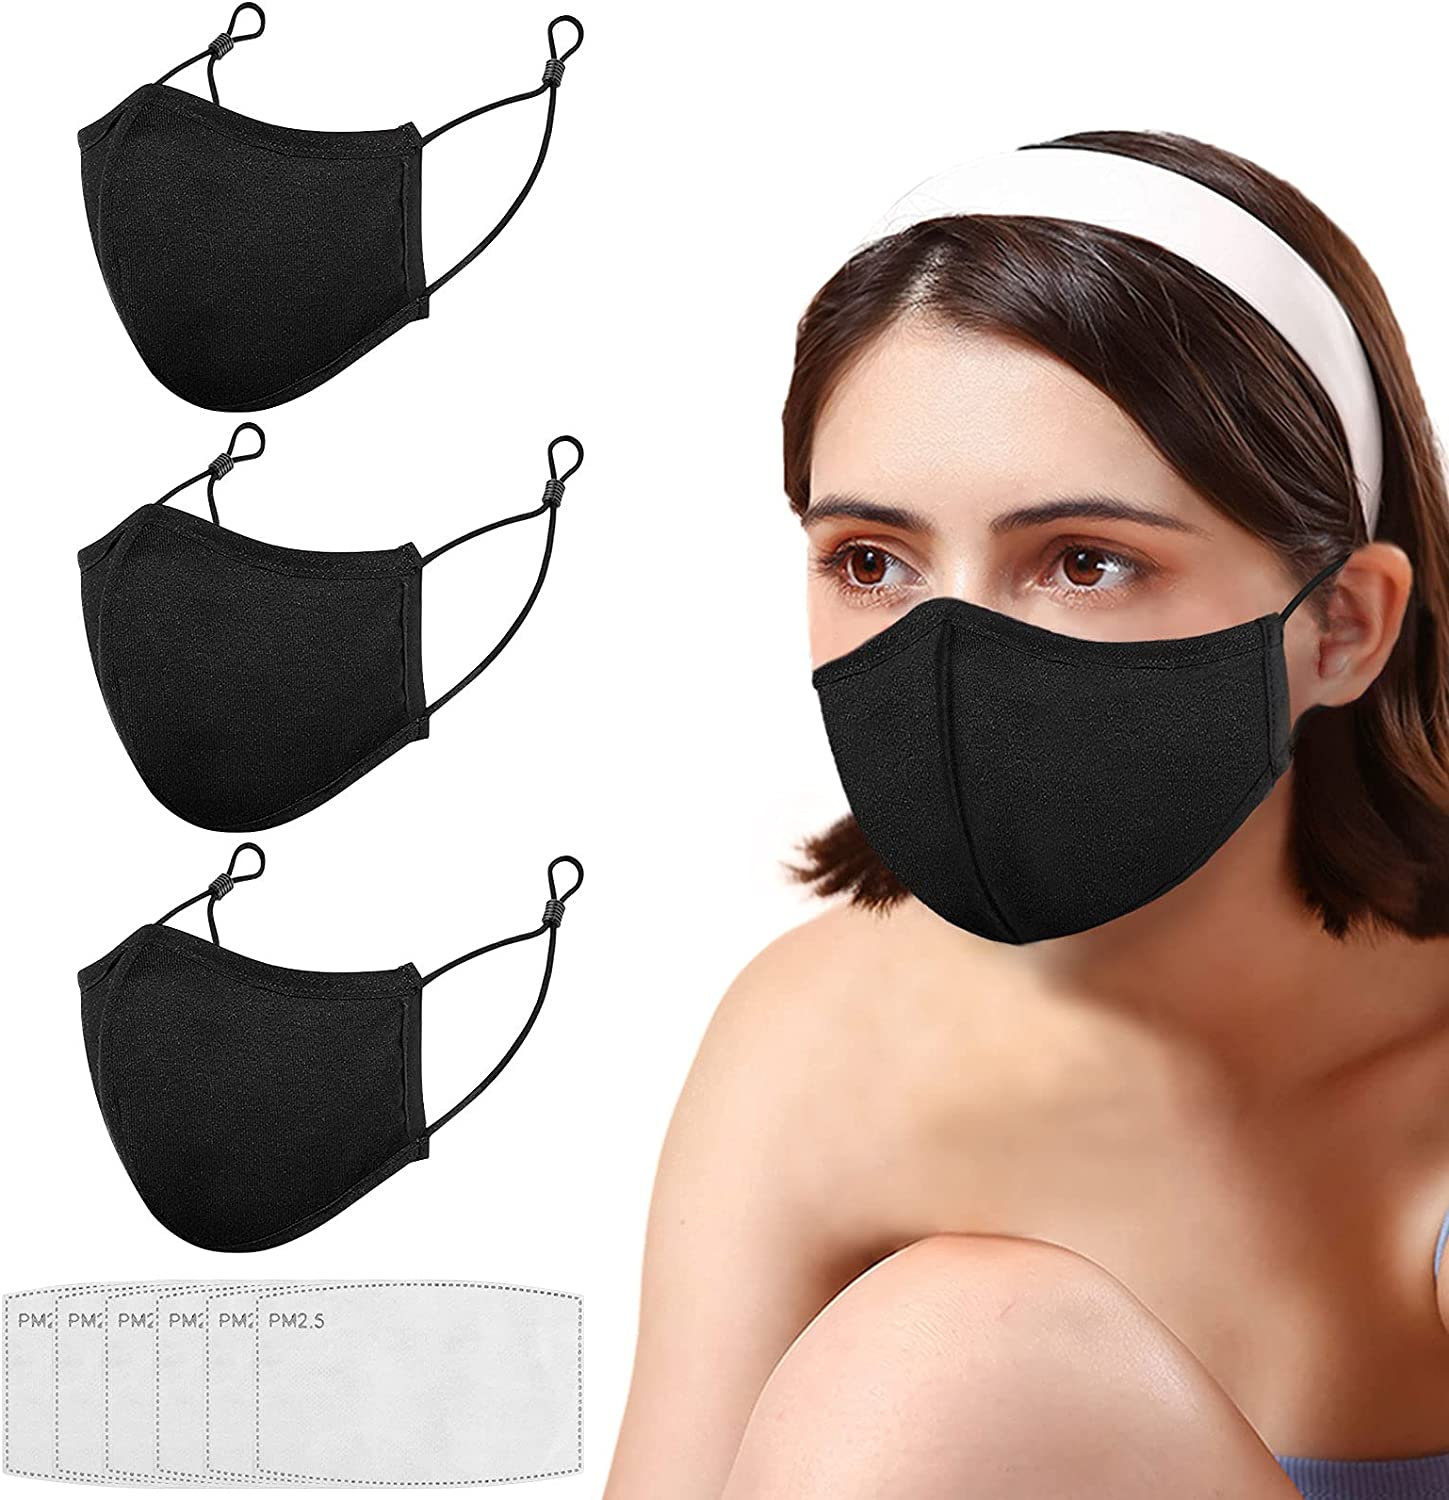 Black Max 81% OFF Import Face Mask Reusable with 6 Cloth Me Filters